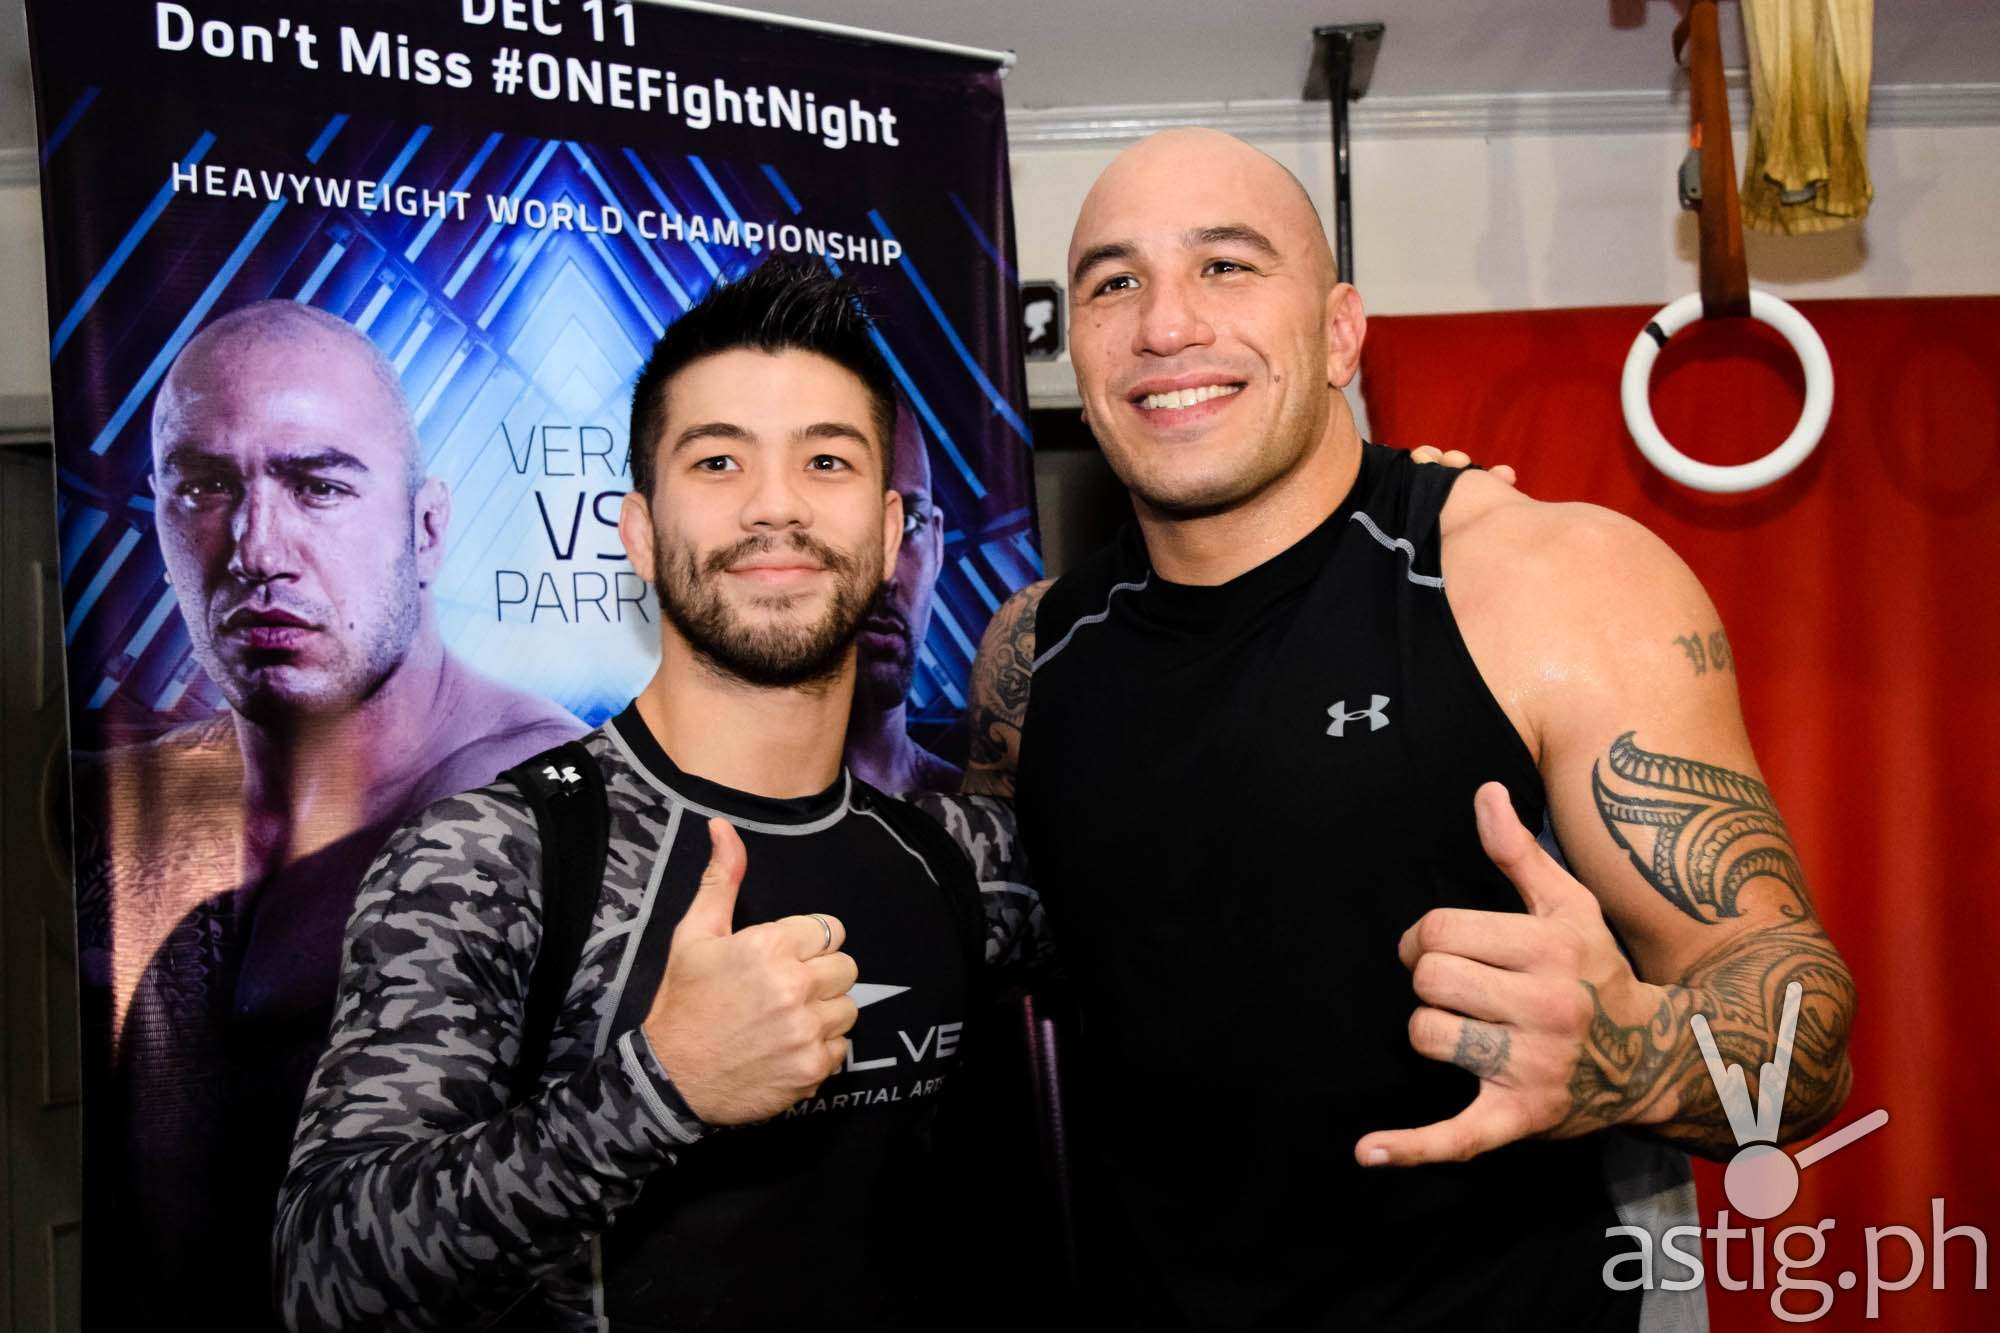 Another fighter with Filipino roots -- Mark Striegl -- is ready to show his wares in the bantamweight division as Brandon Vera puts Filipino pride on the line in the World Heavyweight Championship